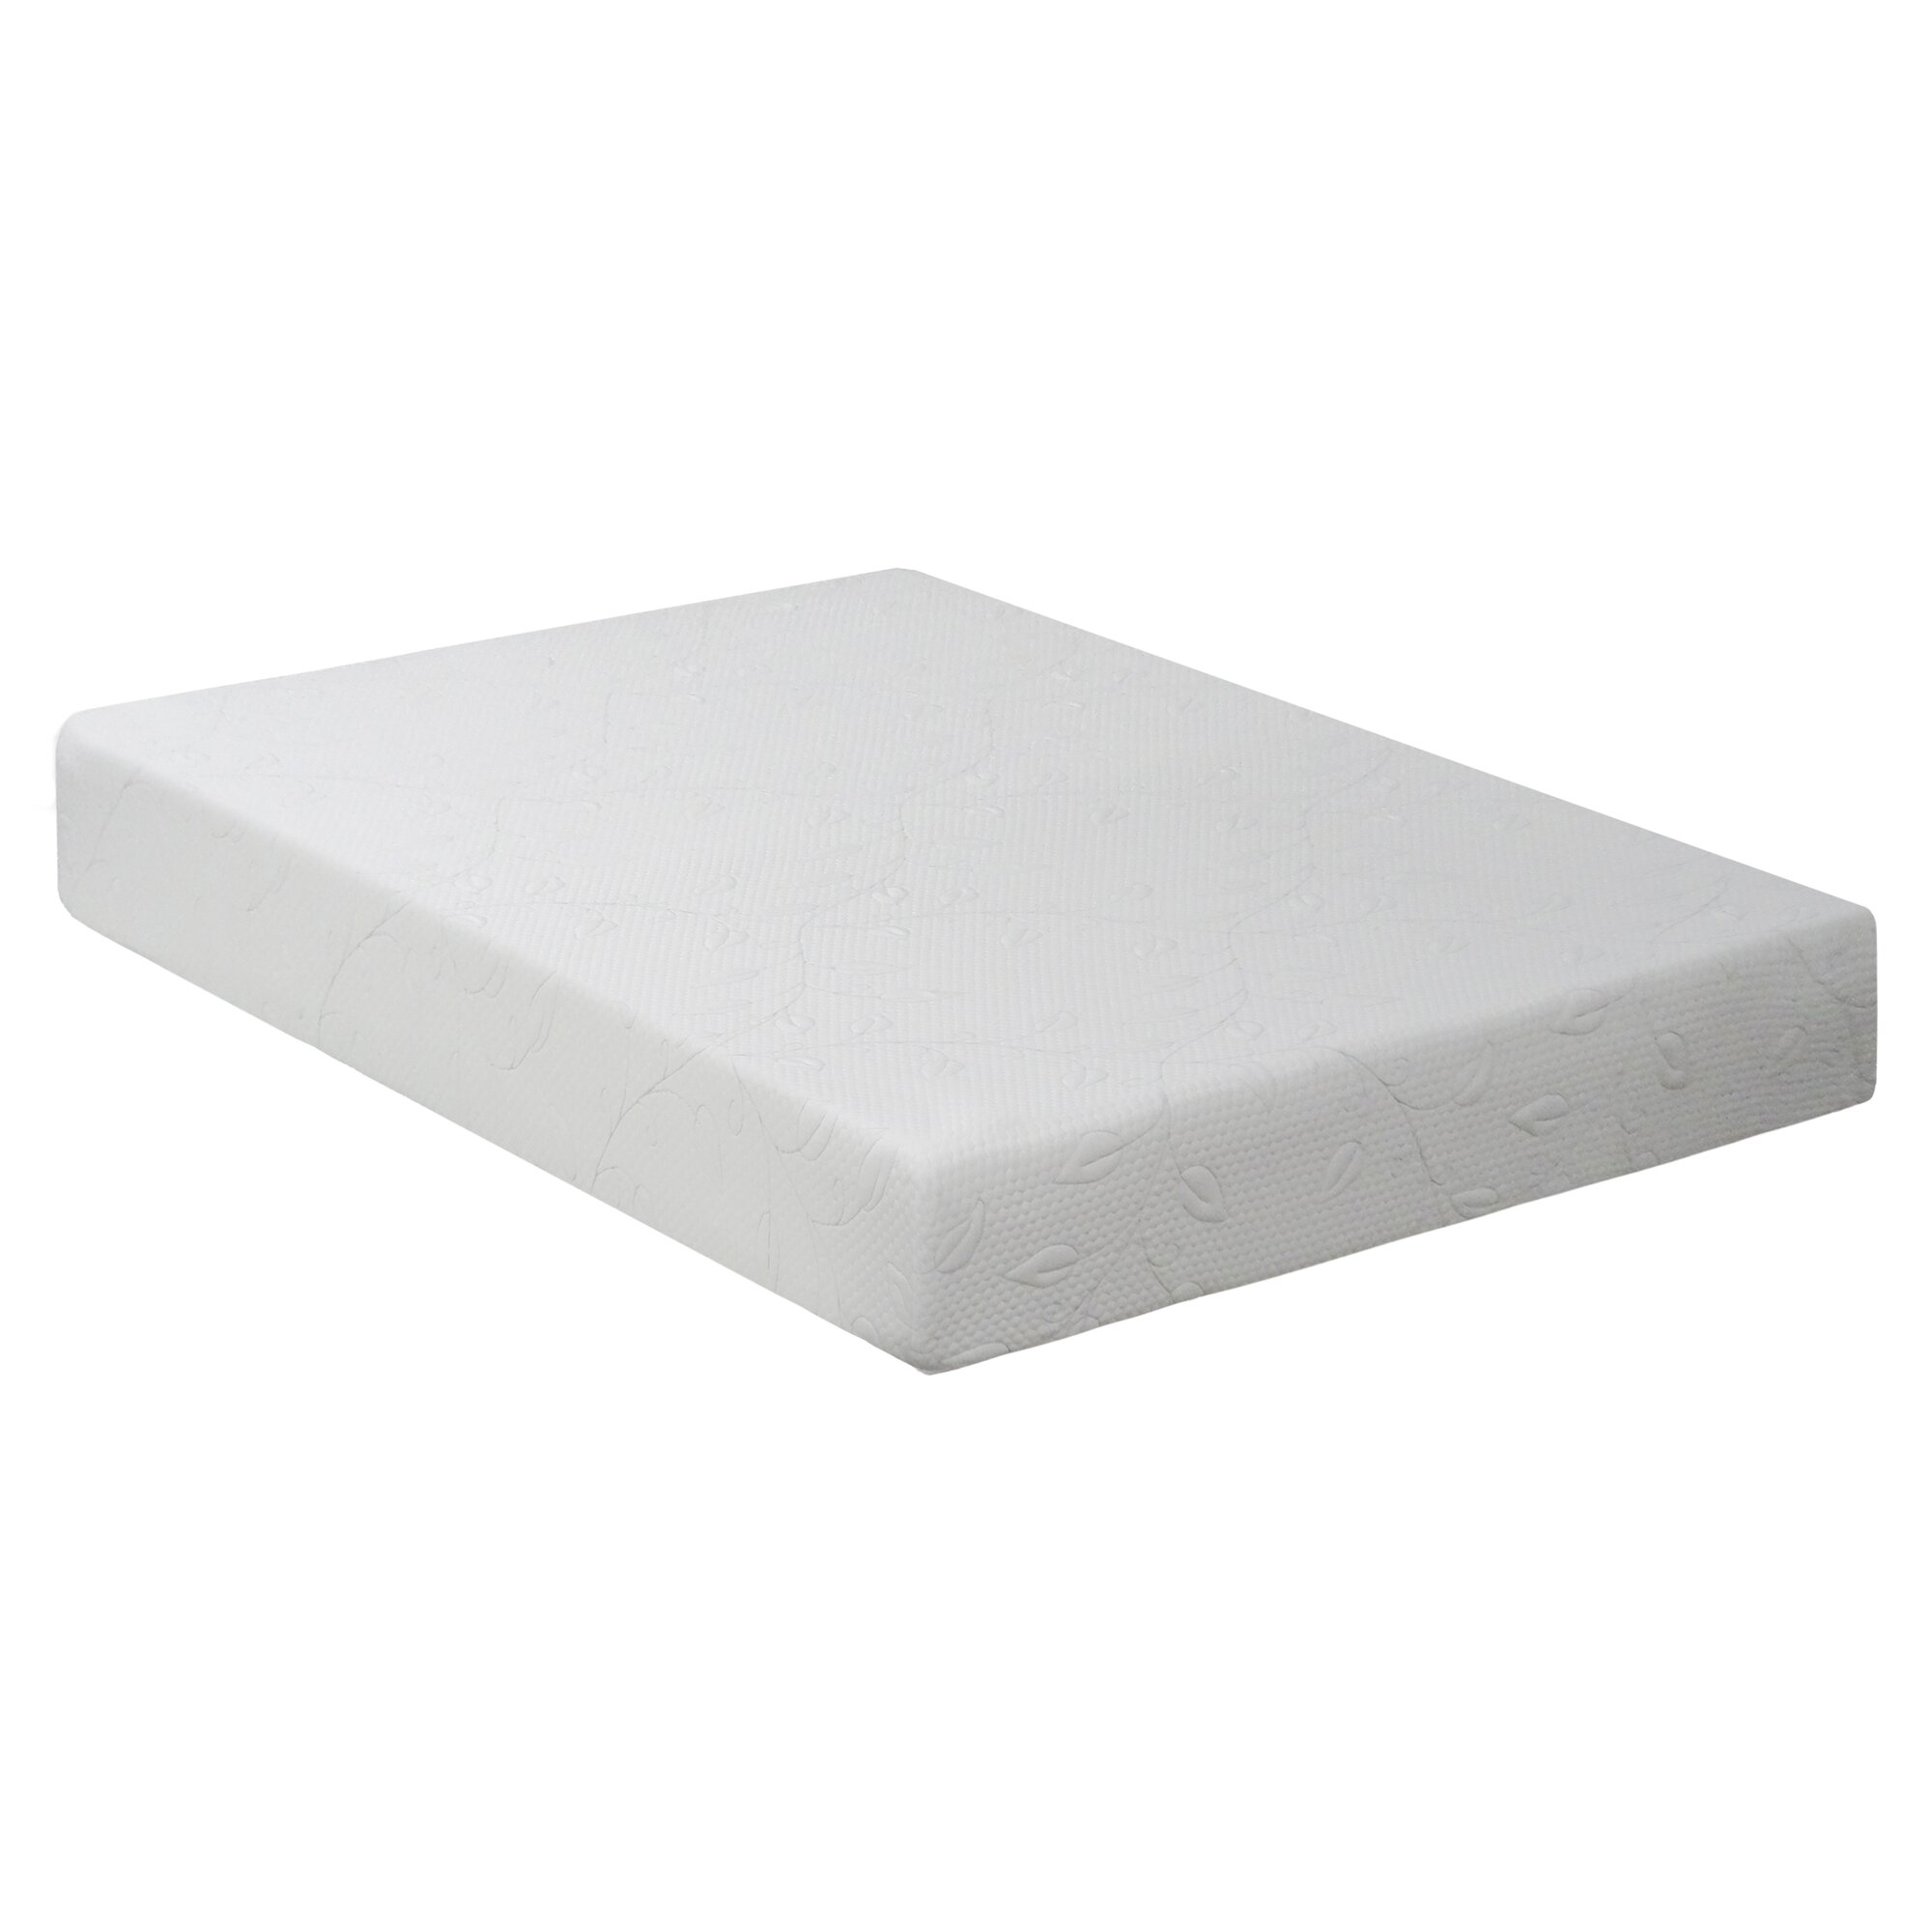 Anew Edit Air Flow 10 Medium Memory Foam Mattress